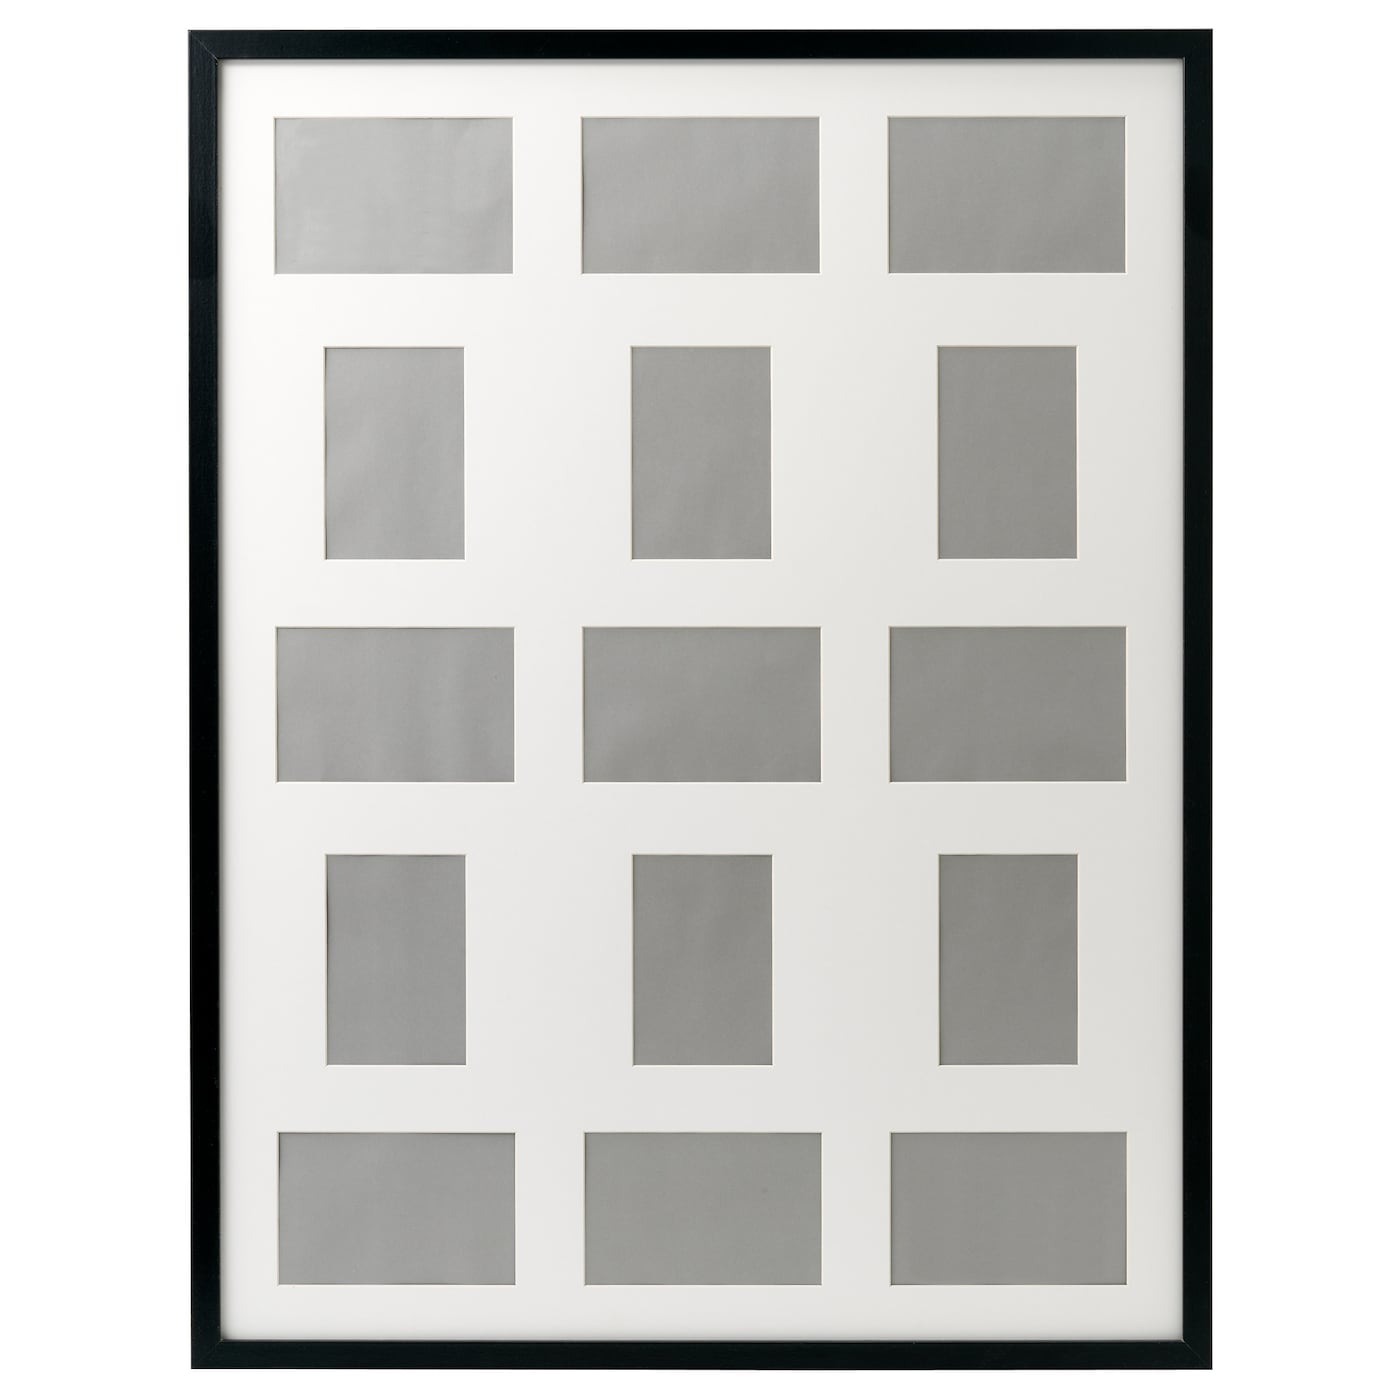 Wall Frames, Collage & Poster Frames | IKEA Ireland